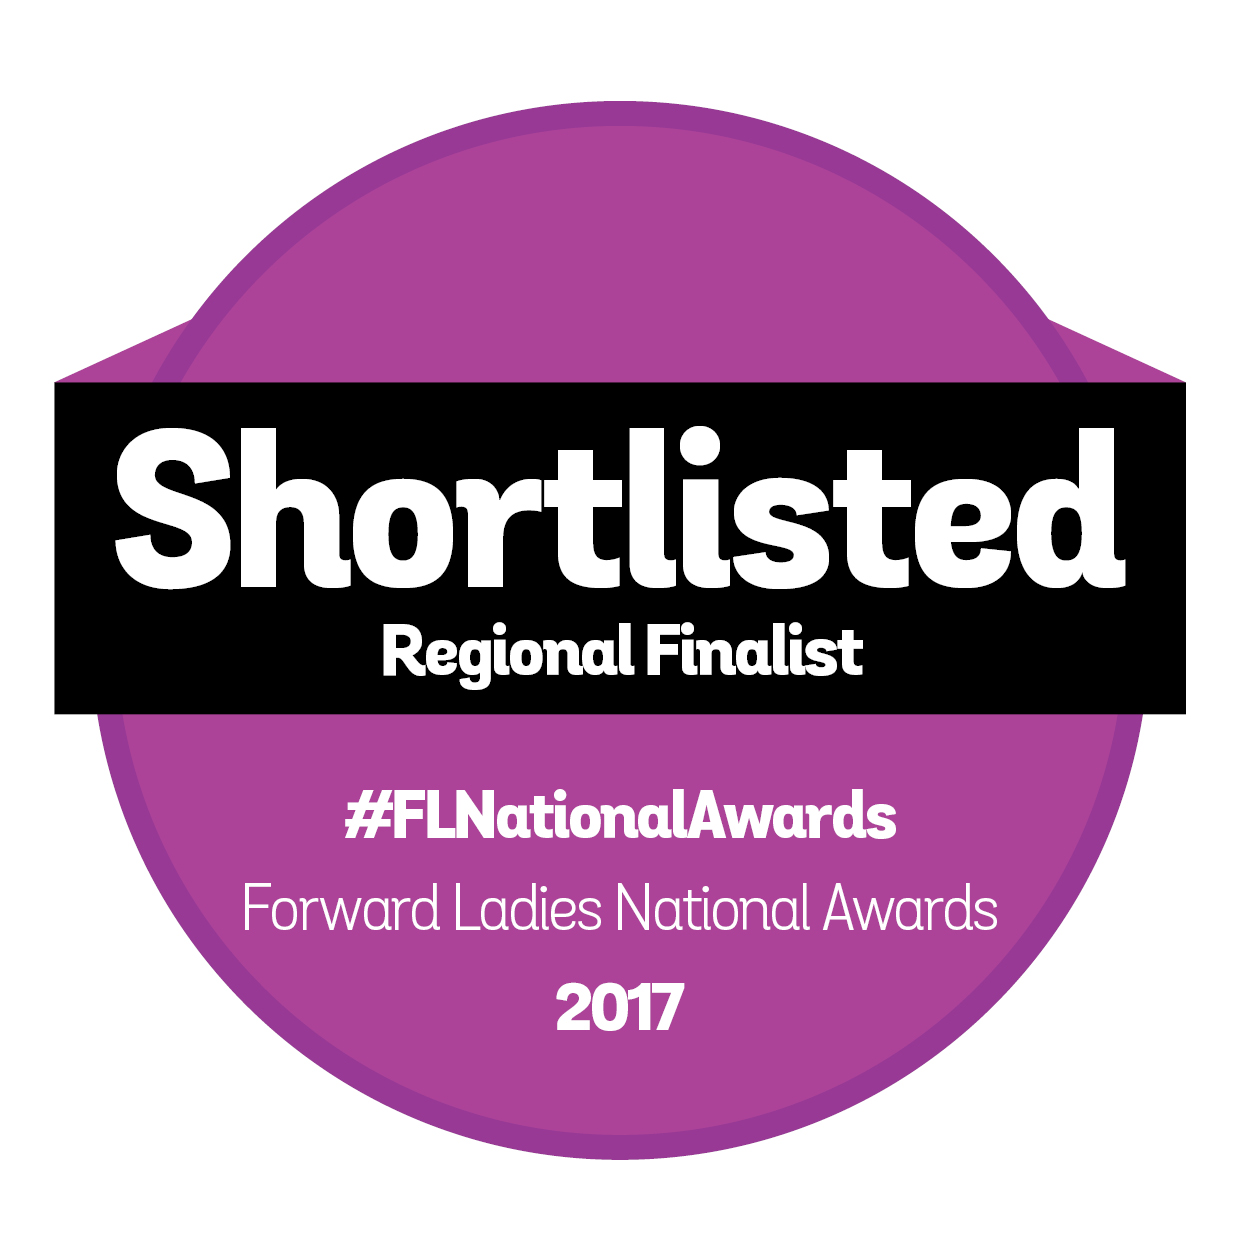 FL awards Sophie Milliken shortlisted